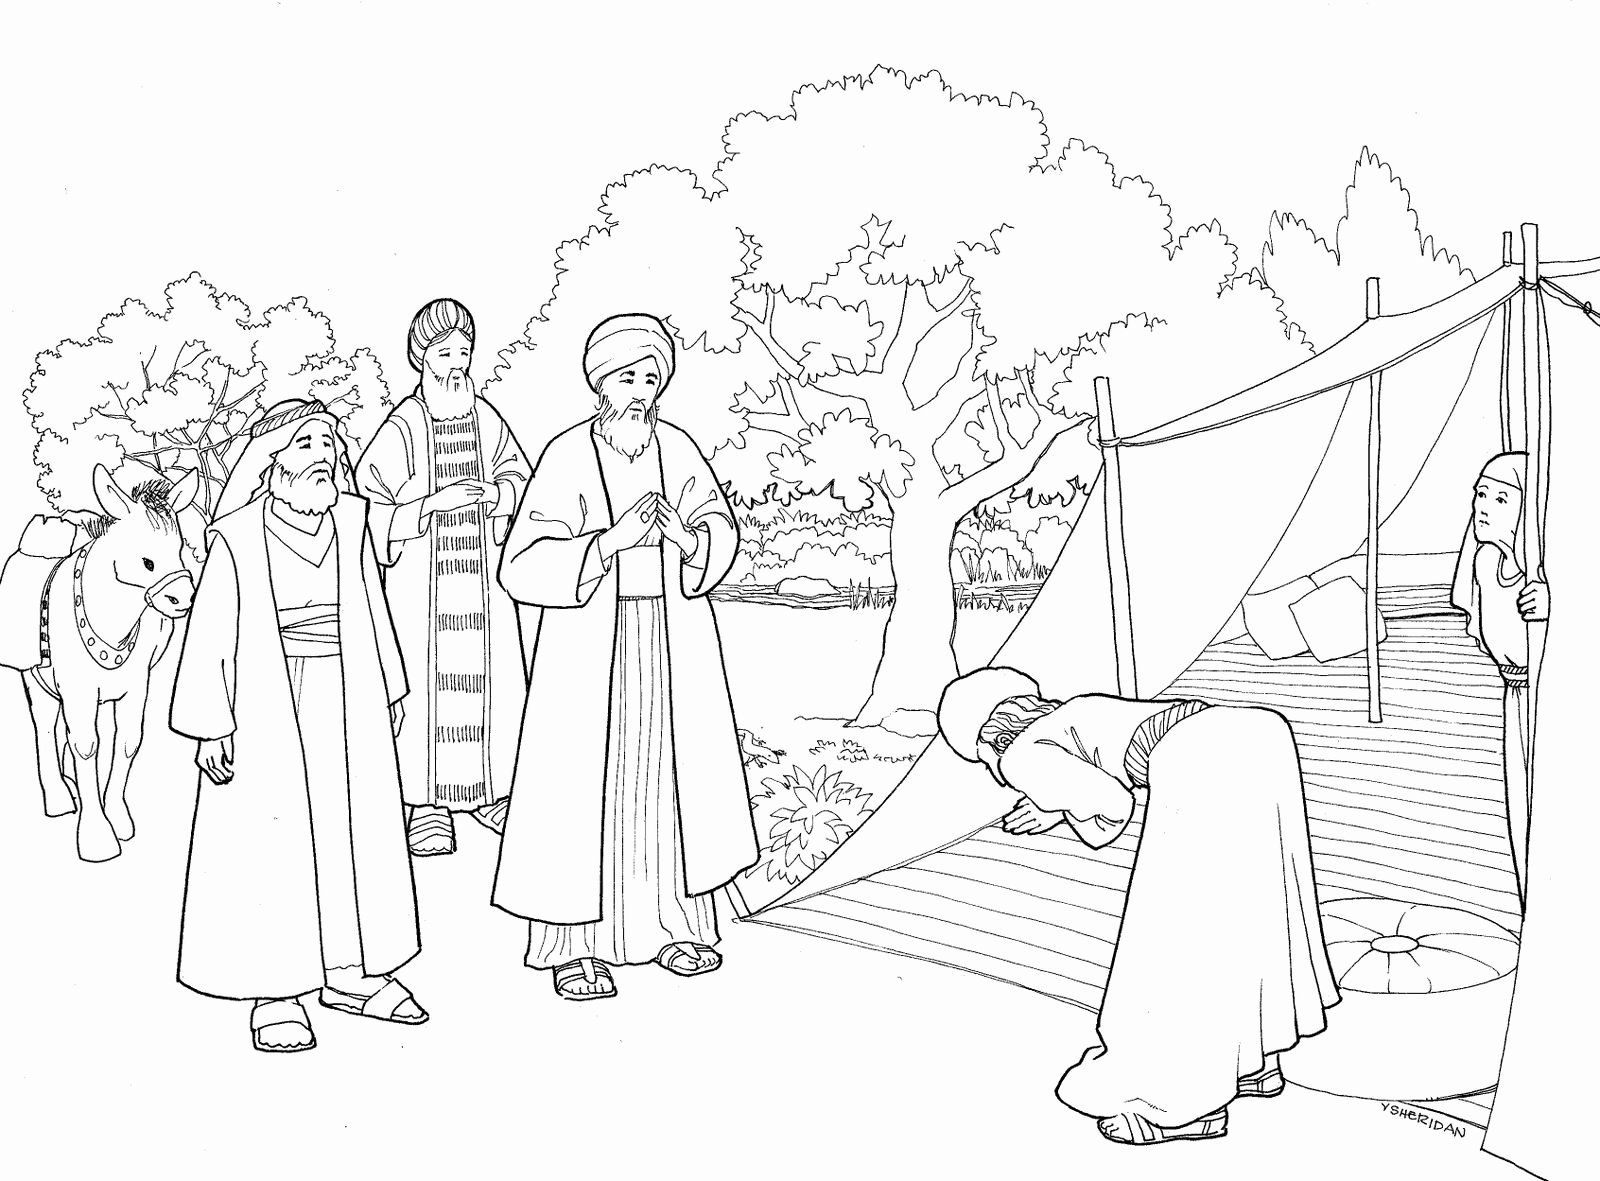 Coloring Activities For Third Graders Inspirational Abraham And Three Visitors Coloring Pa Bible Coloring Pages Tree Coloring Page Sunday School Coloring Pages